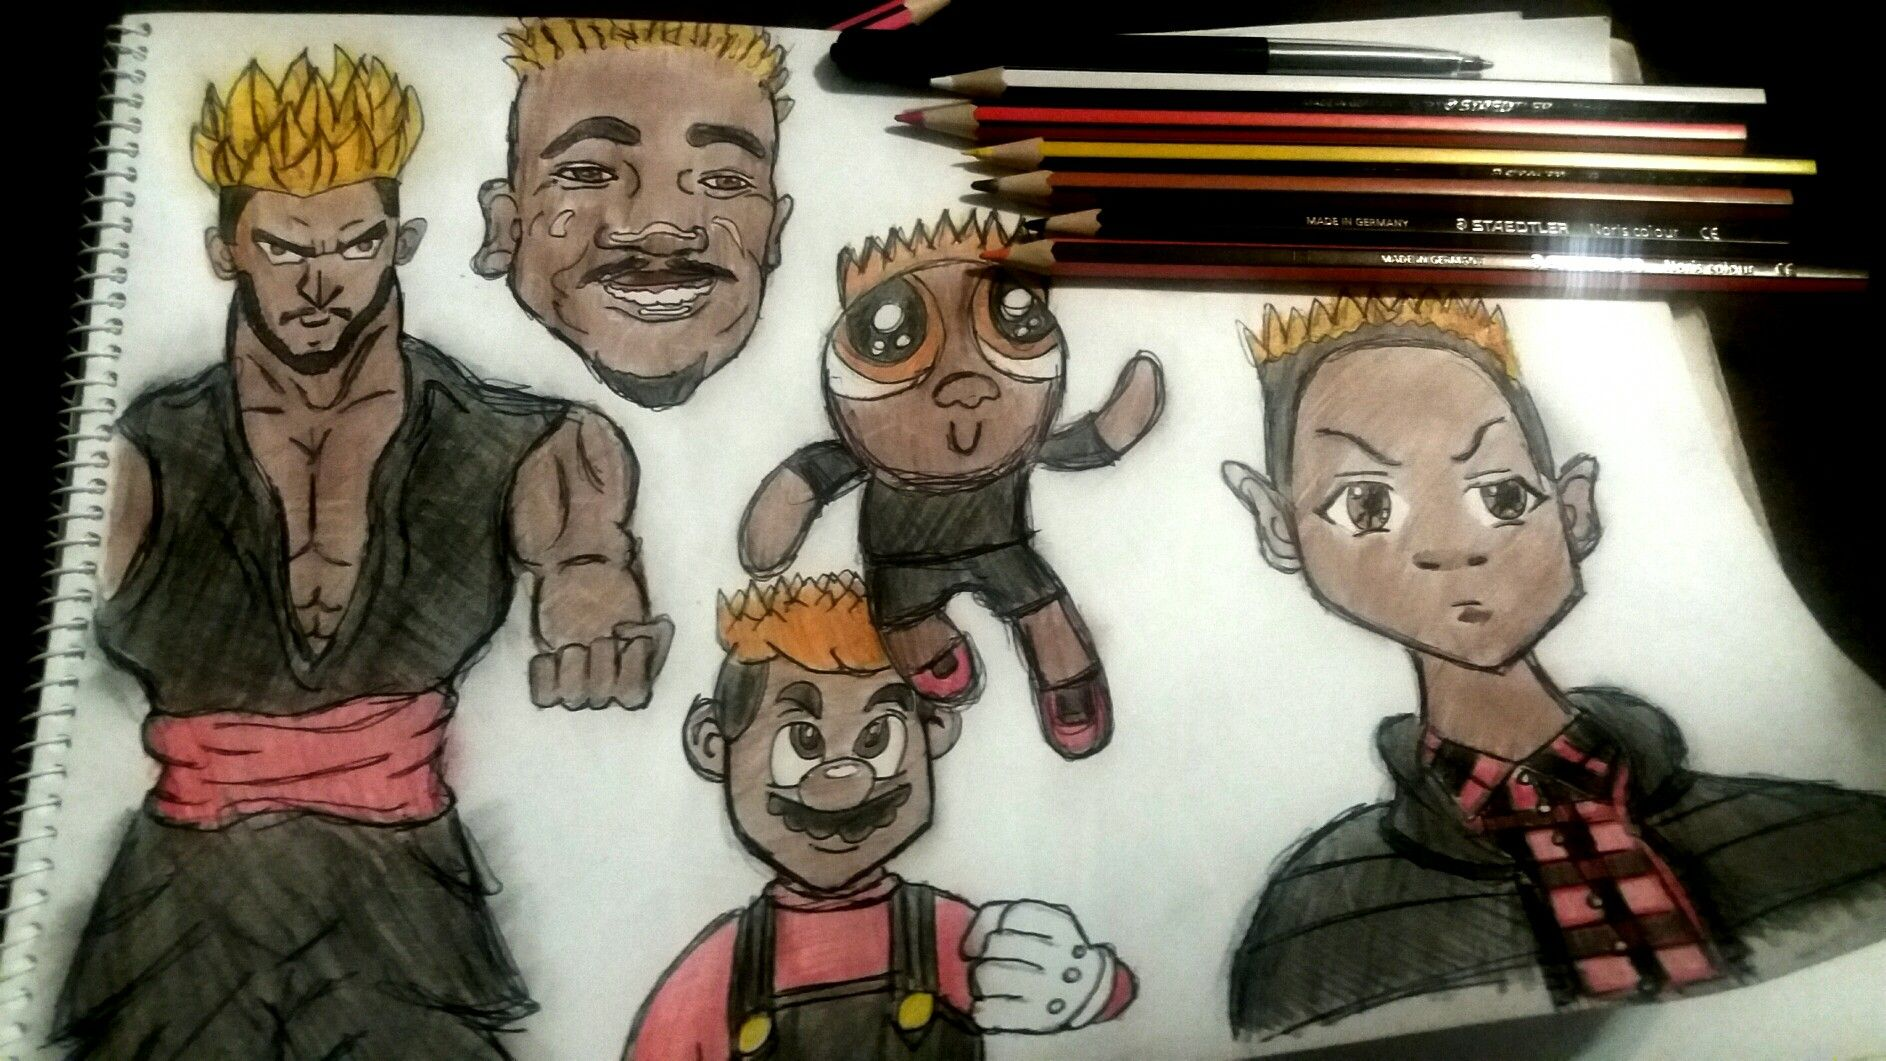 Drawing style challenge of myself dbz style super mario style boondocks style and powerpuff girls style